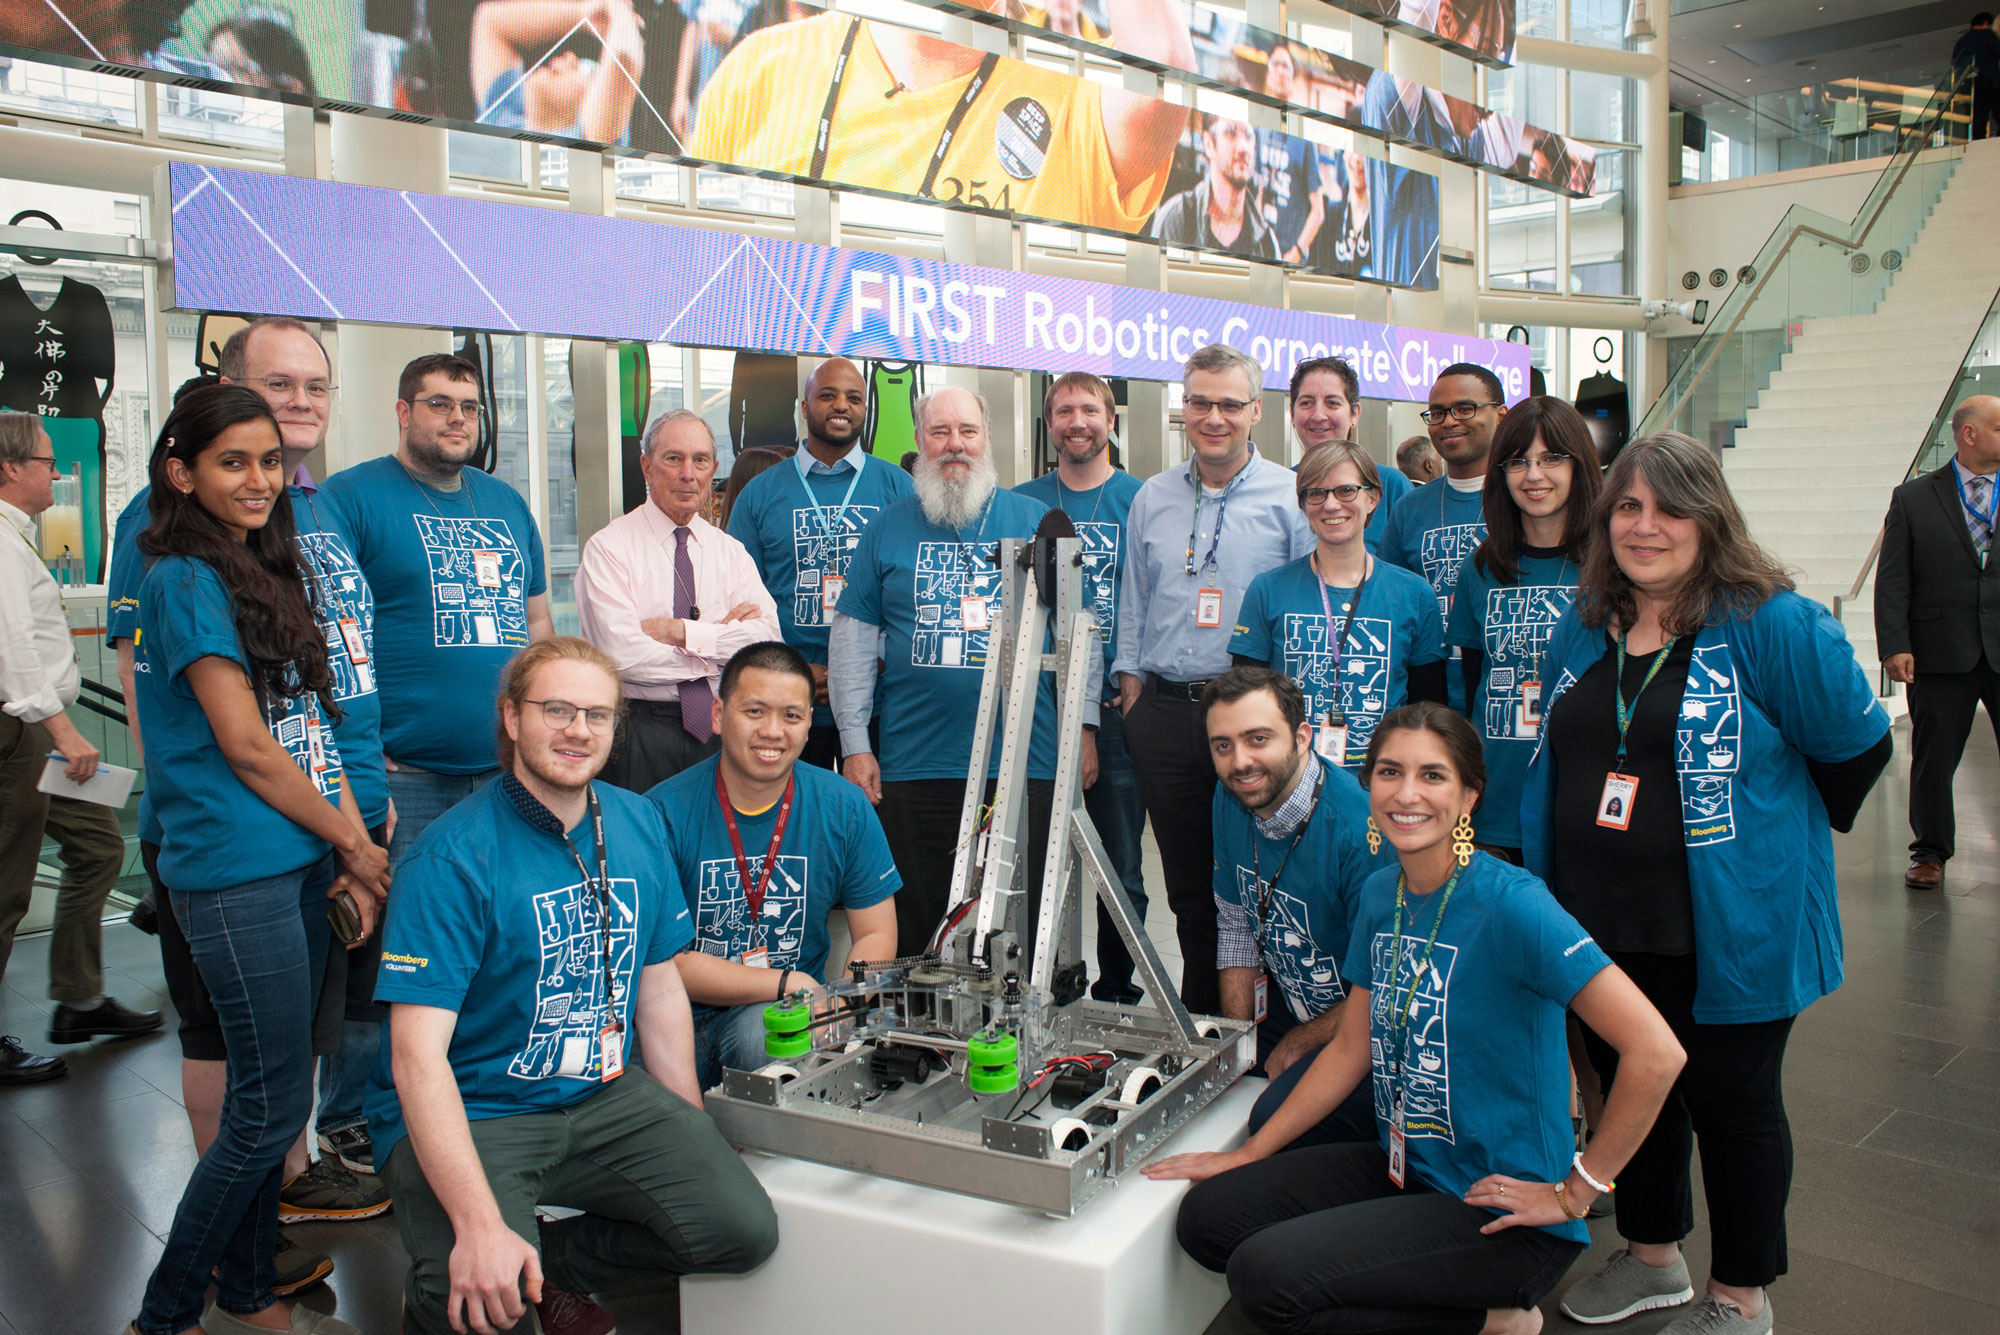 New York FIRST Robotics Mentors with Mike Bloomberg and Vlad Kliatchko